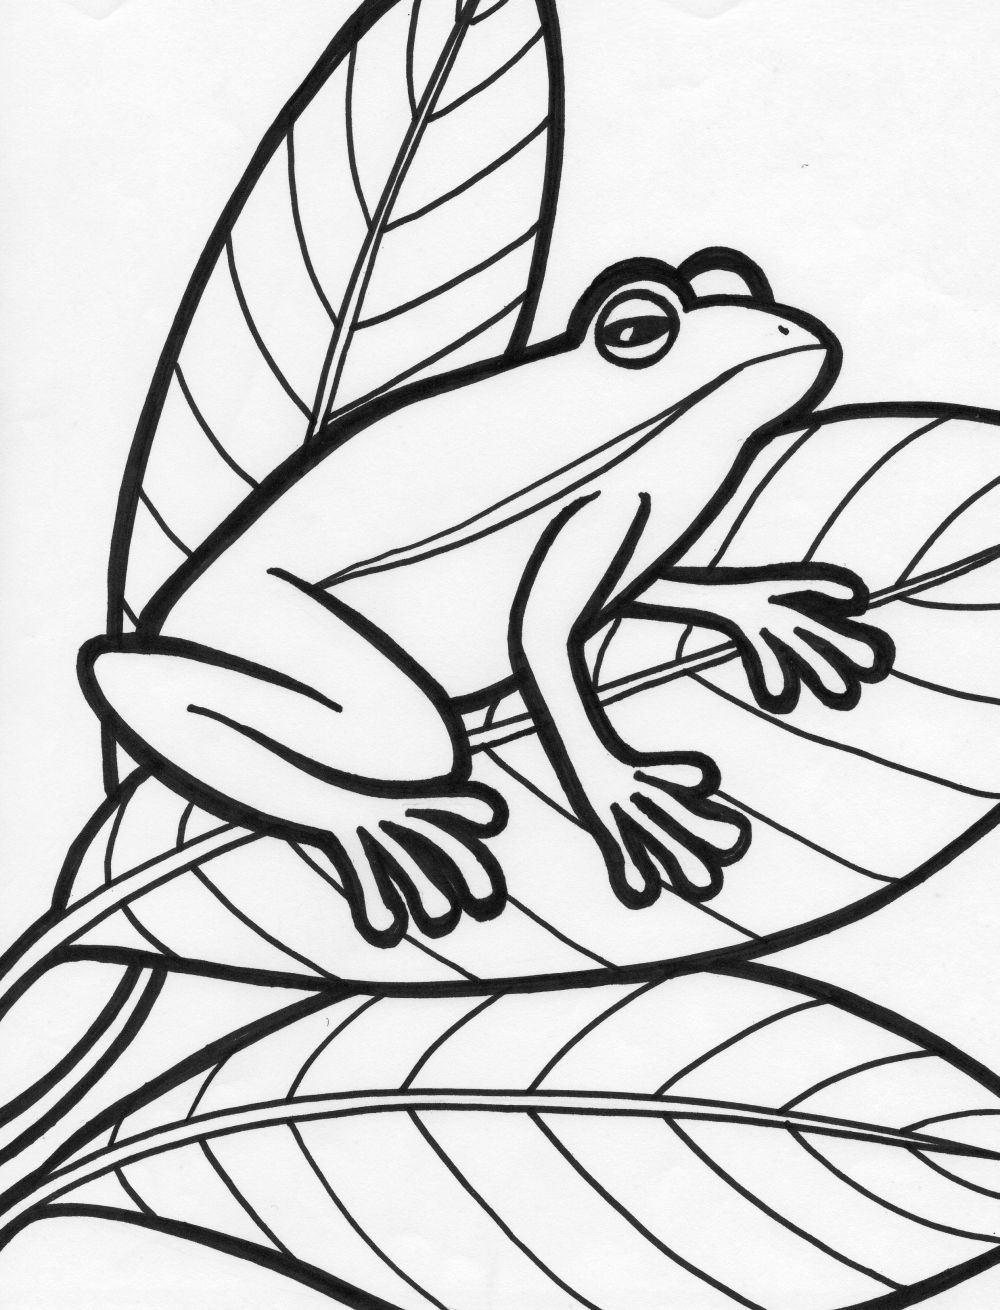 frog coloring pages to print free printable frog coloring pages for kids cool2bkids print frog coloring pages to